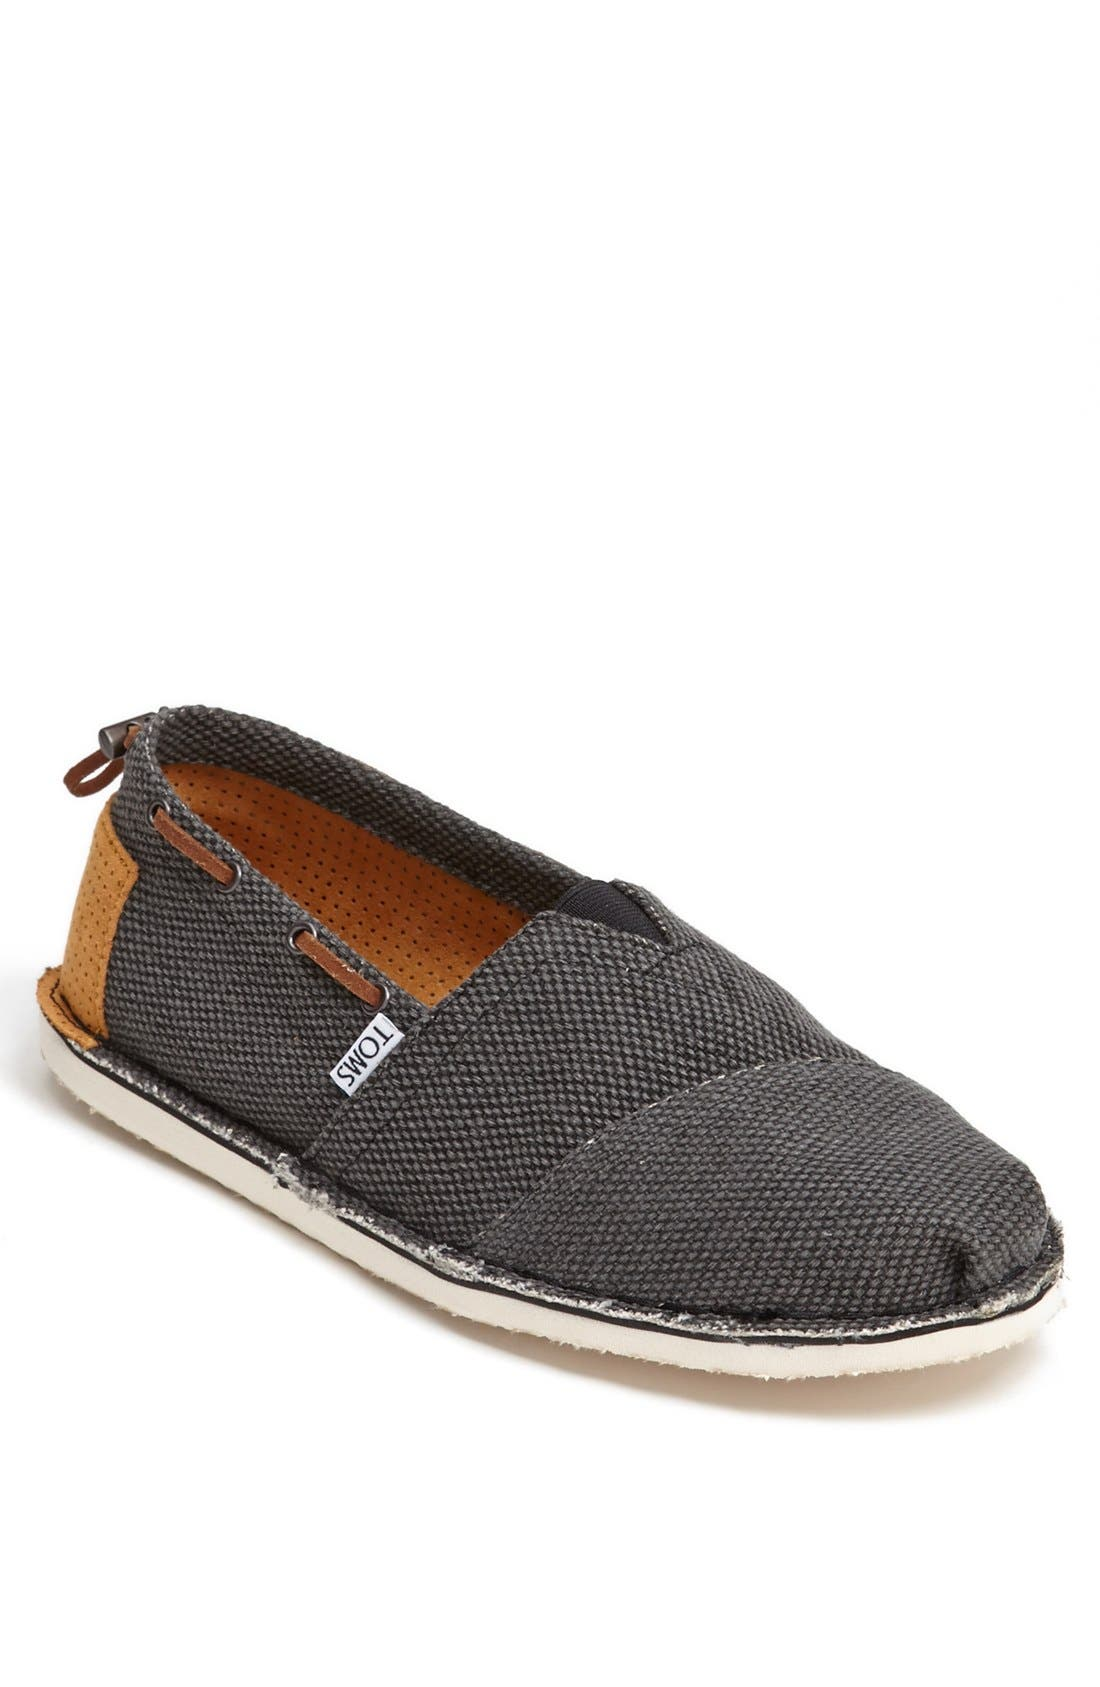 Main Image - TOMS 'Bimini - Stitchout' Slip-On (Men)